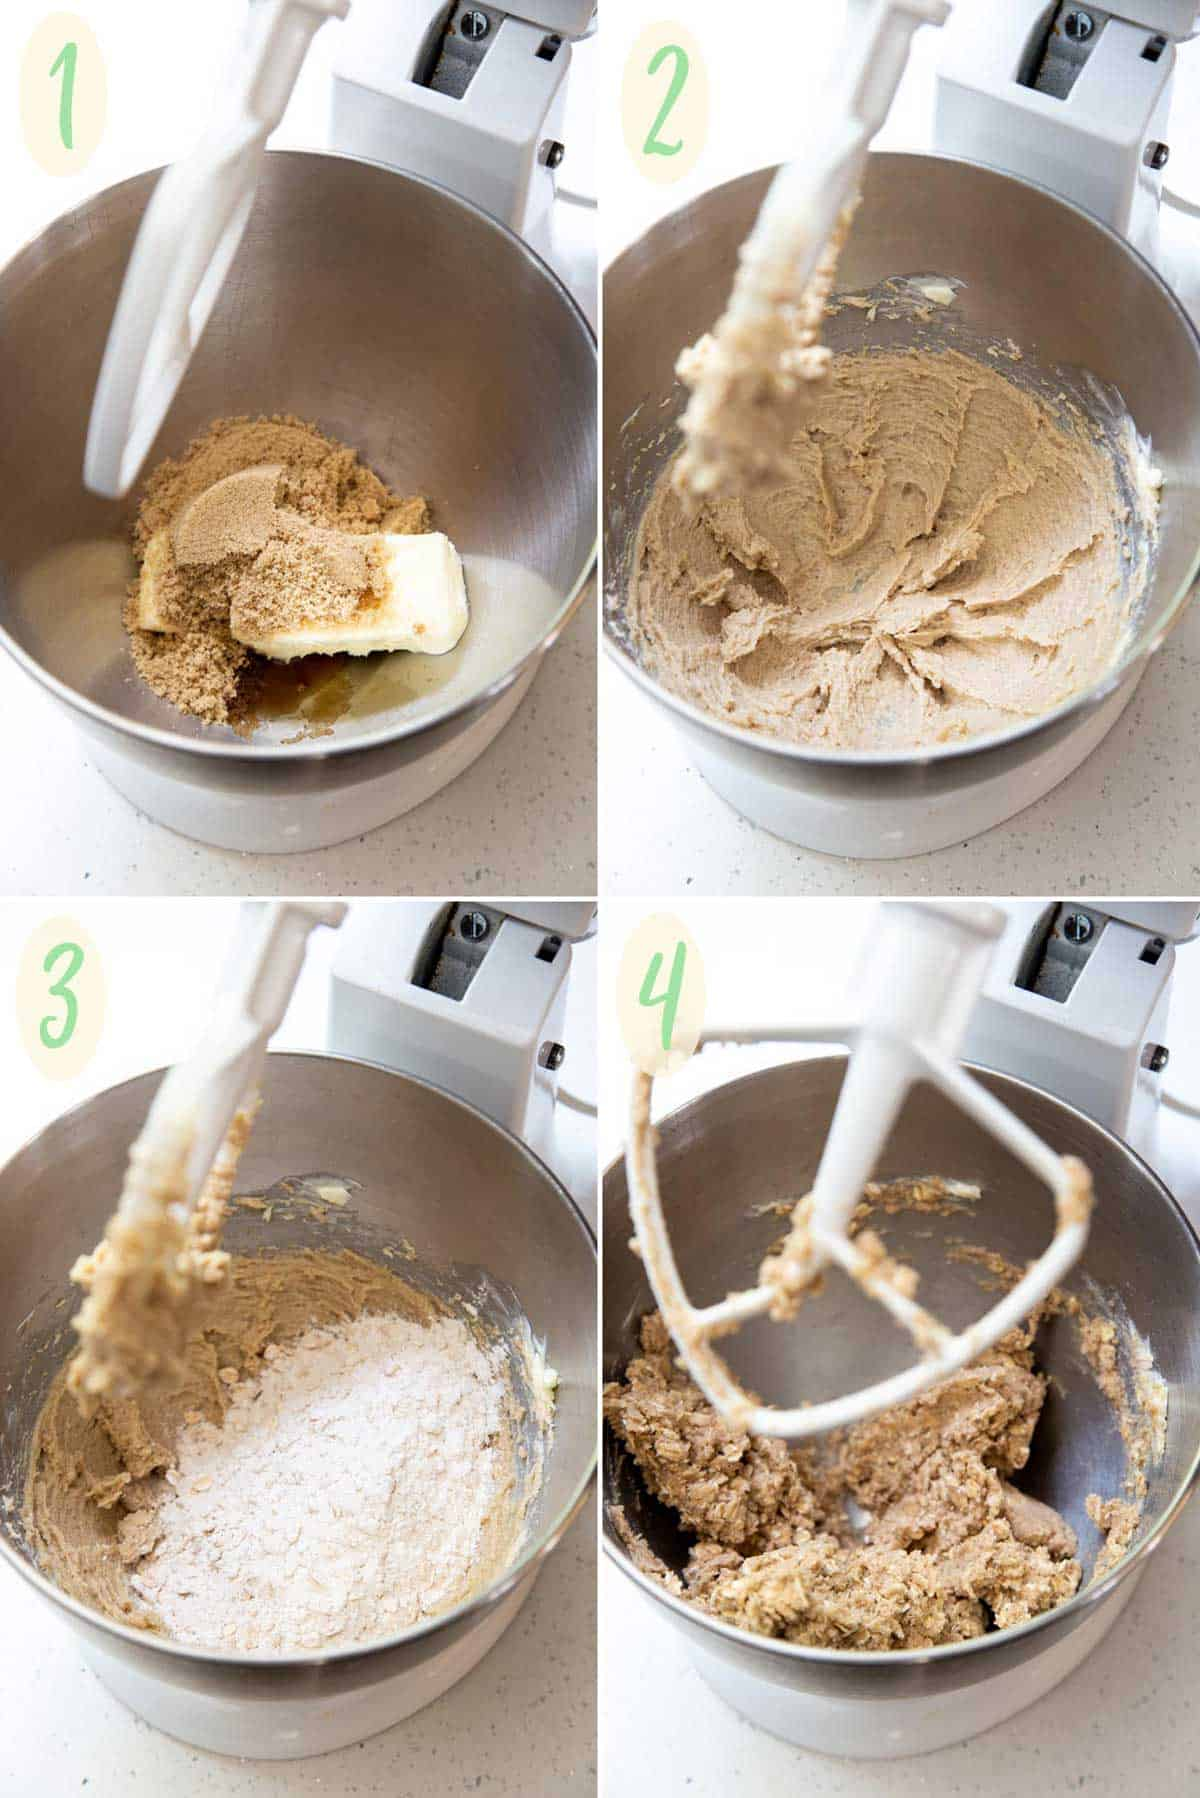 A collage of 4 photos showing how to make the dough for the apple pie bar crust